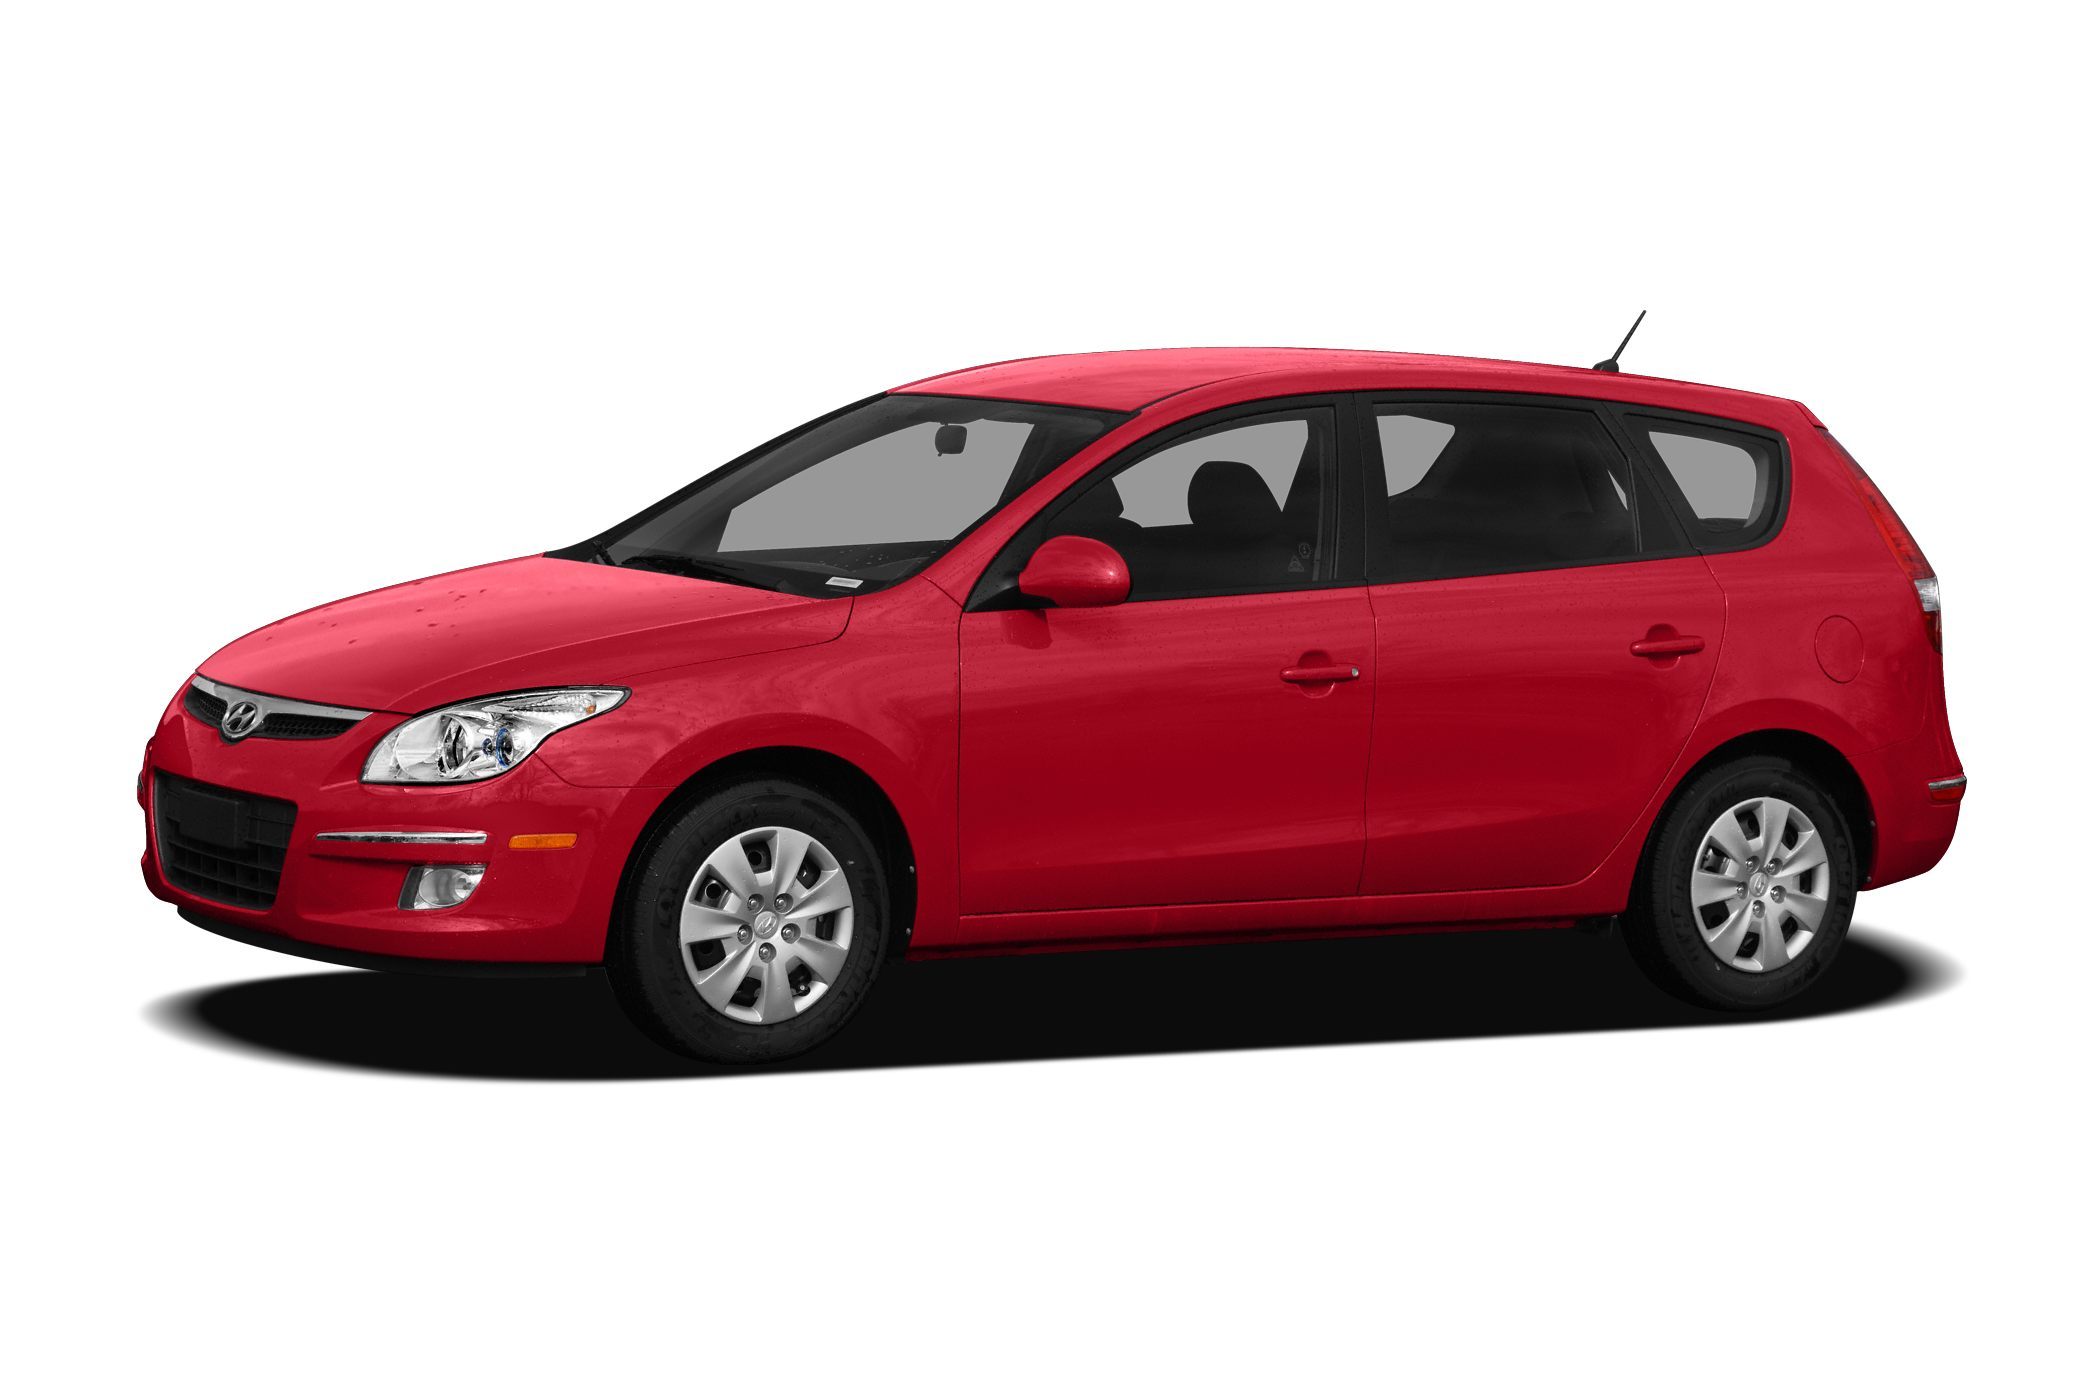 2011 Hyundai Elantra Touring GLS Hatchback for sale in Dexter for $18,900 with 10,711 miles.